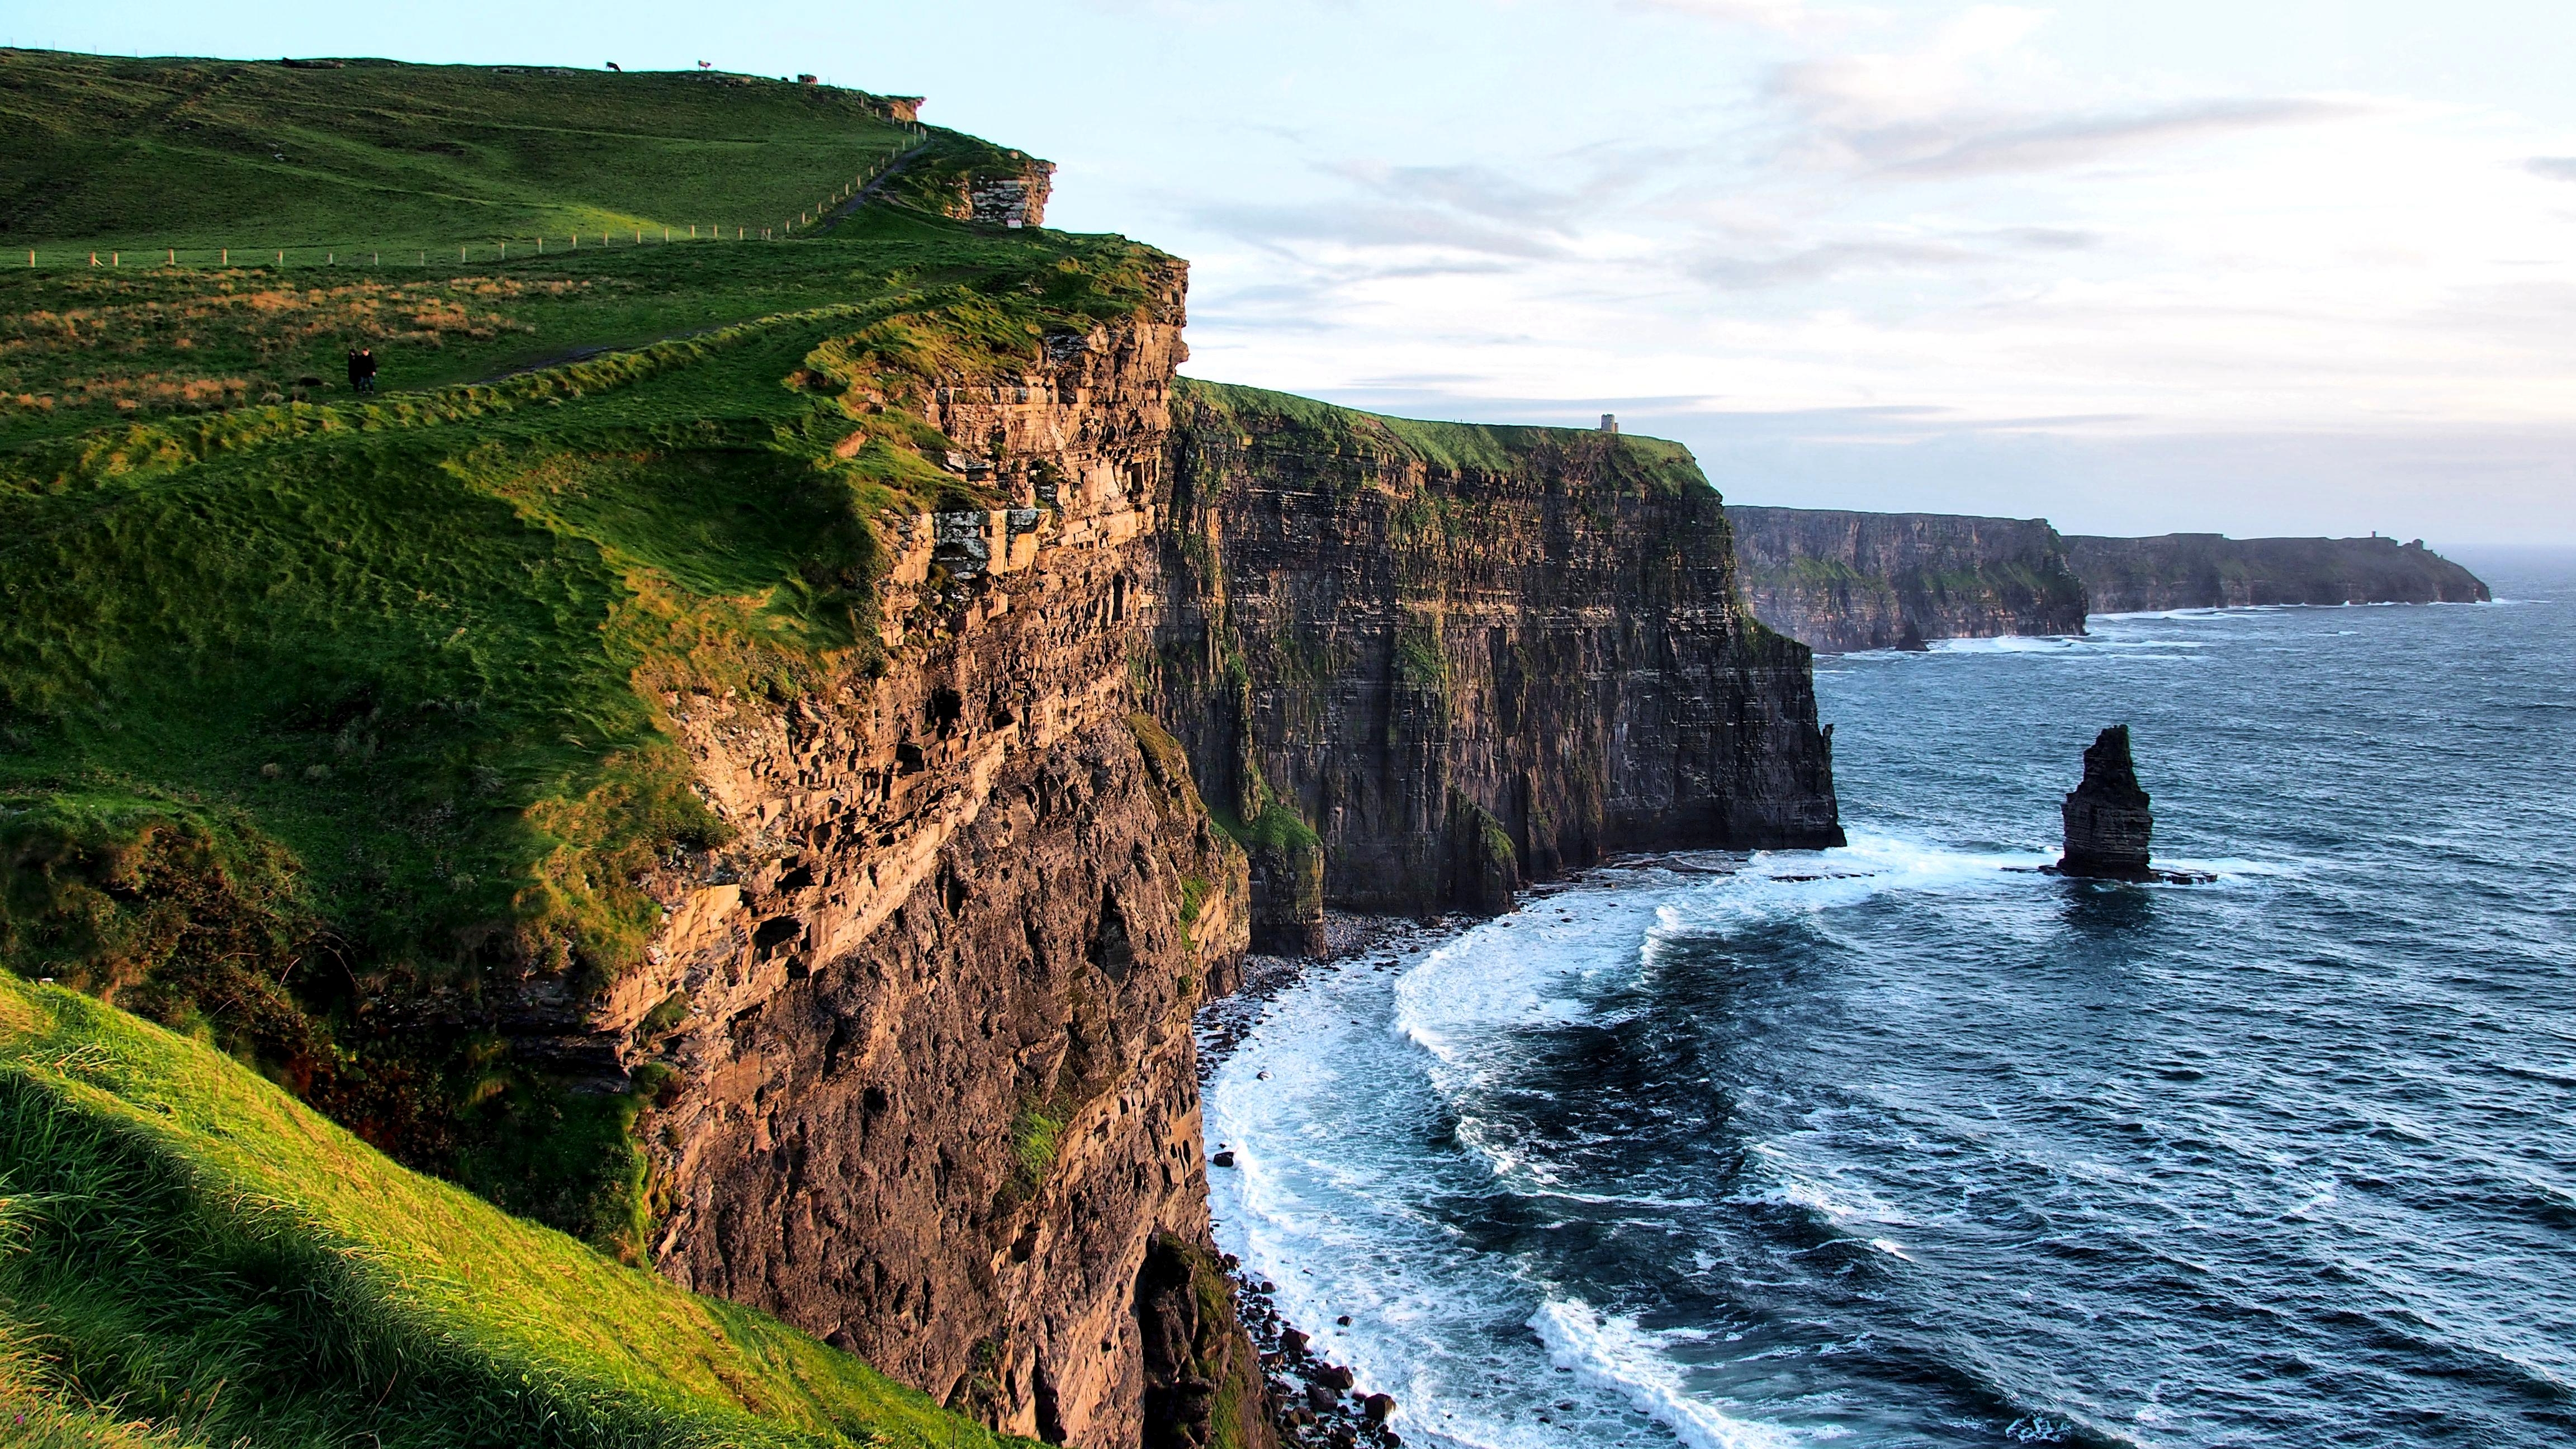 B&B accommodation near Cliffs of Moher County Clare Ireland